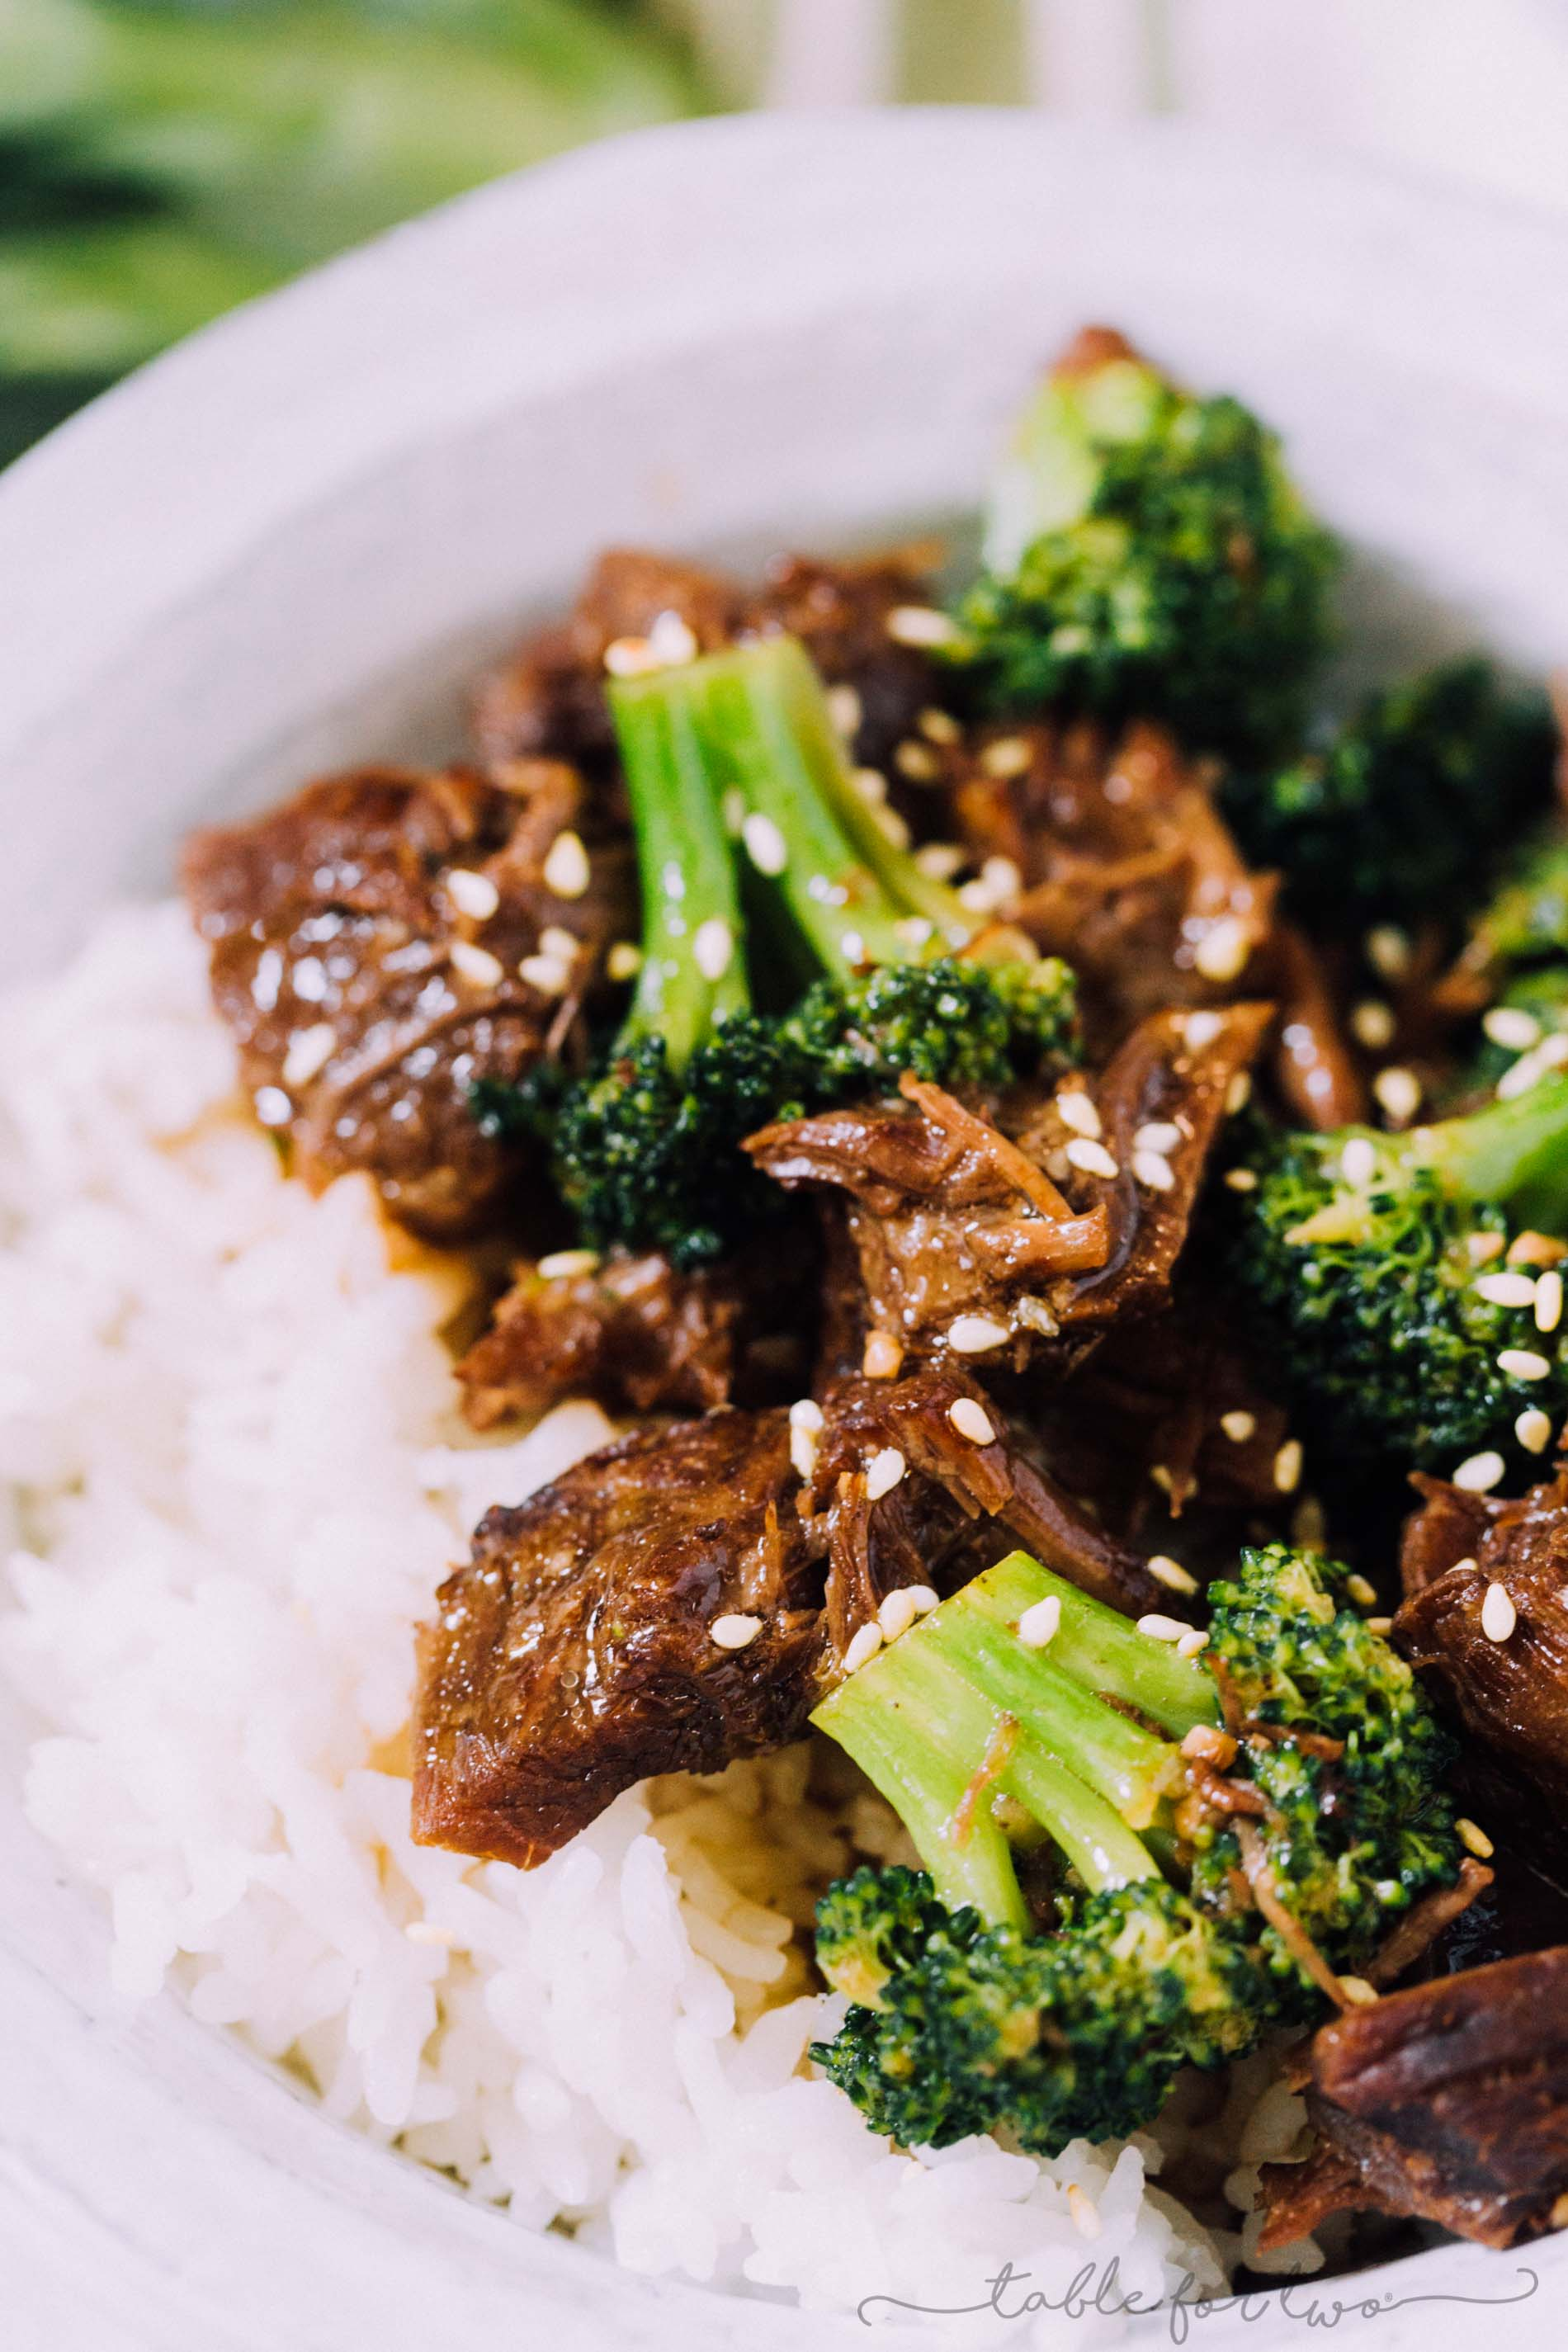 An Instant Pot (pressure cooker) version of the classic beef and broccoli that everyone loves!